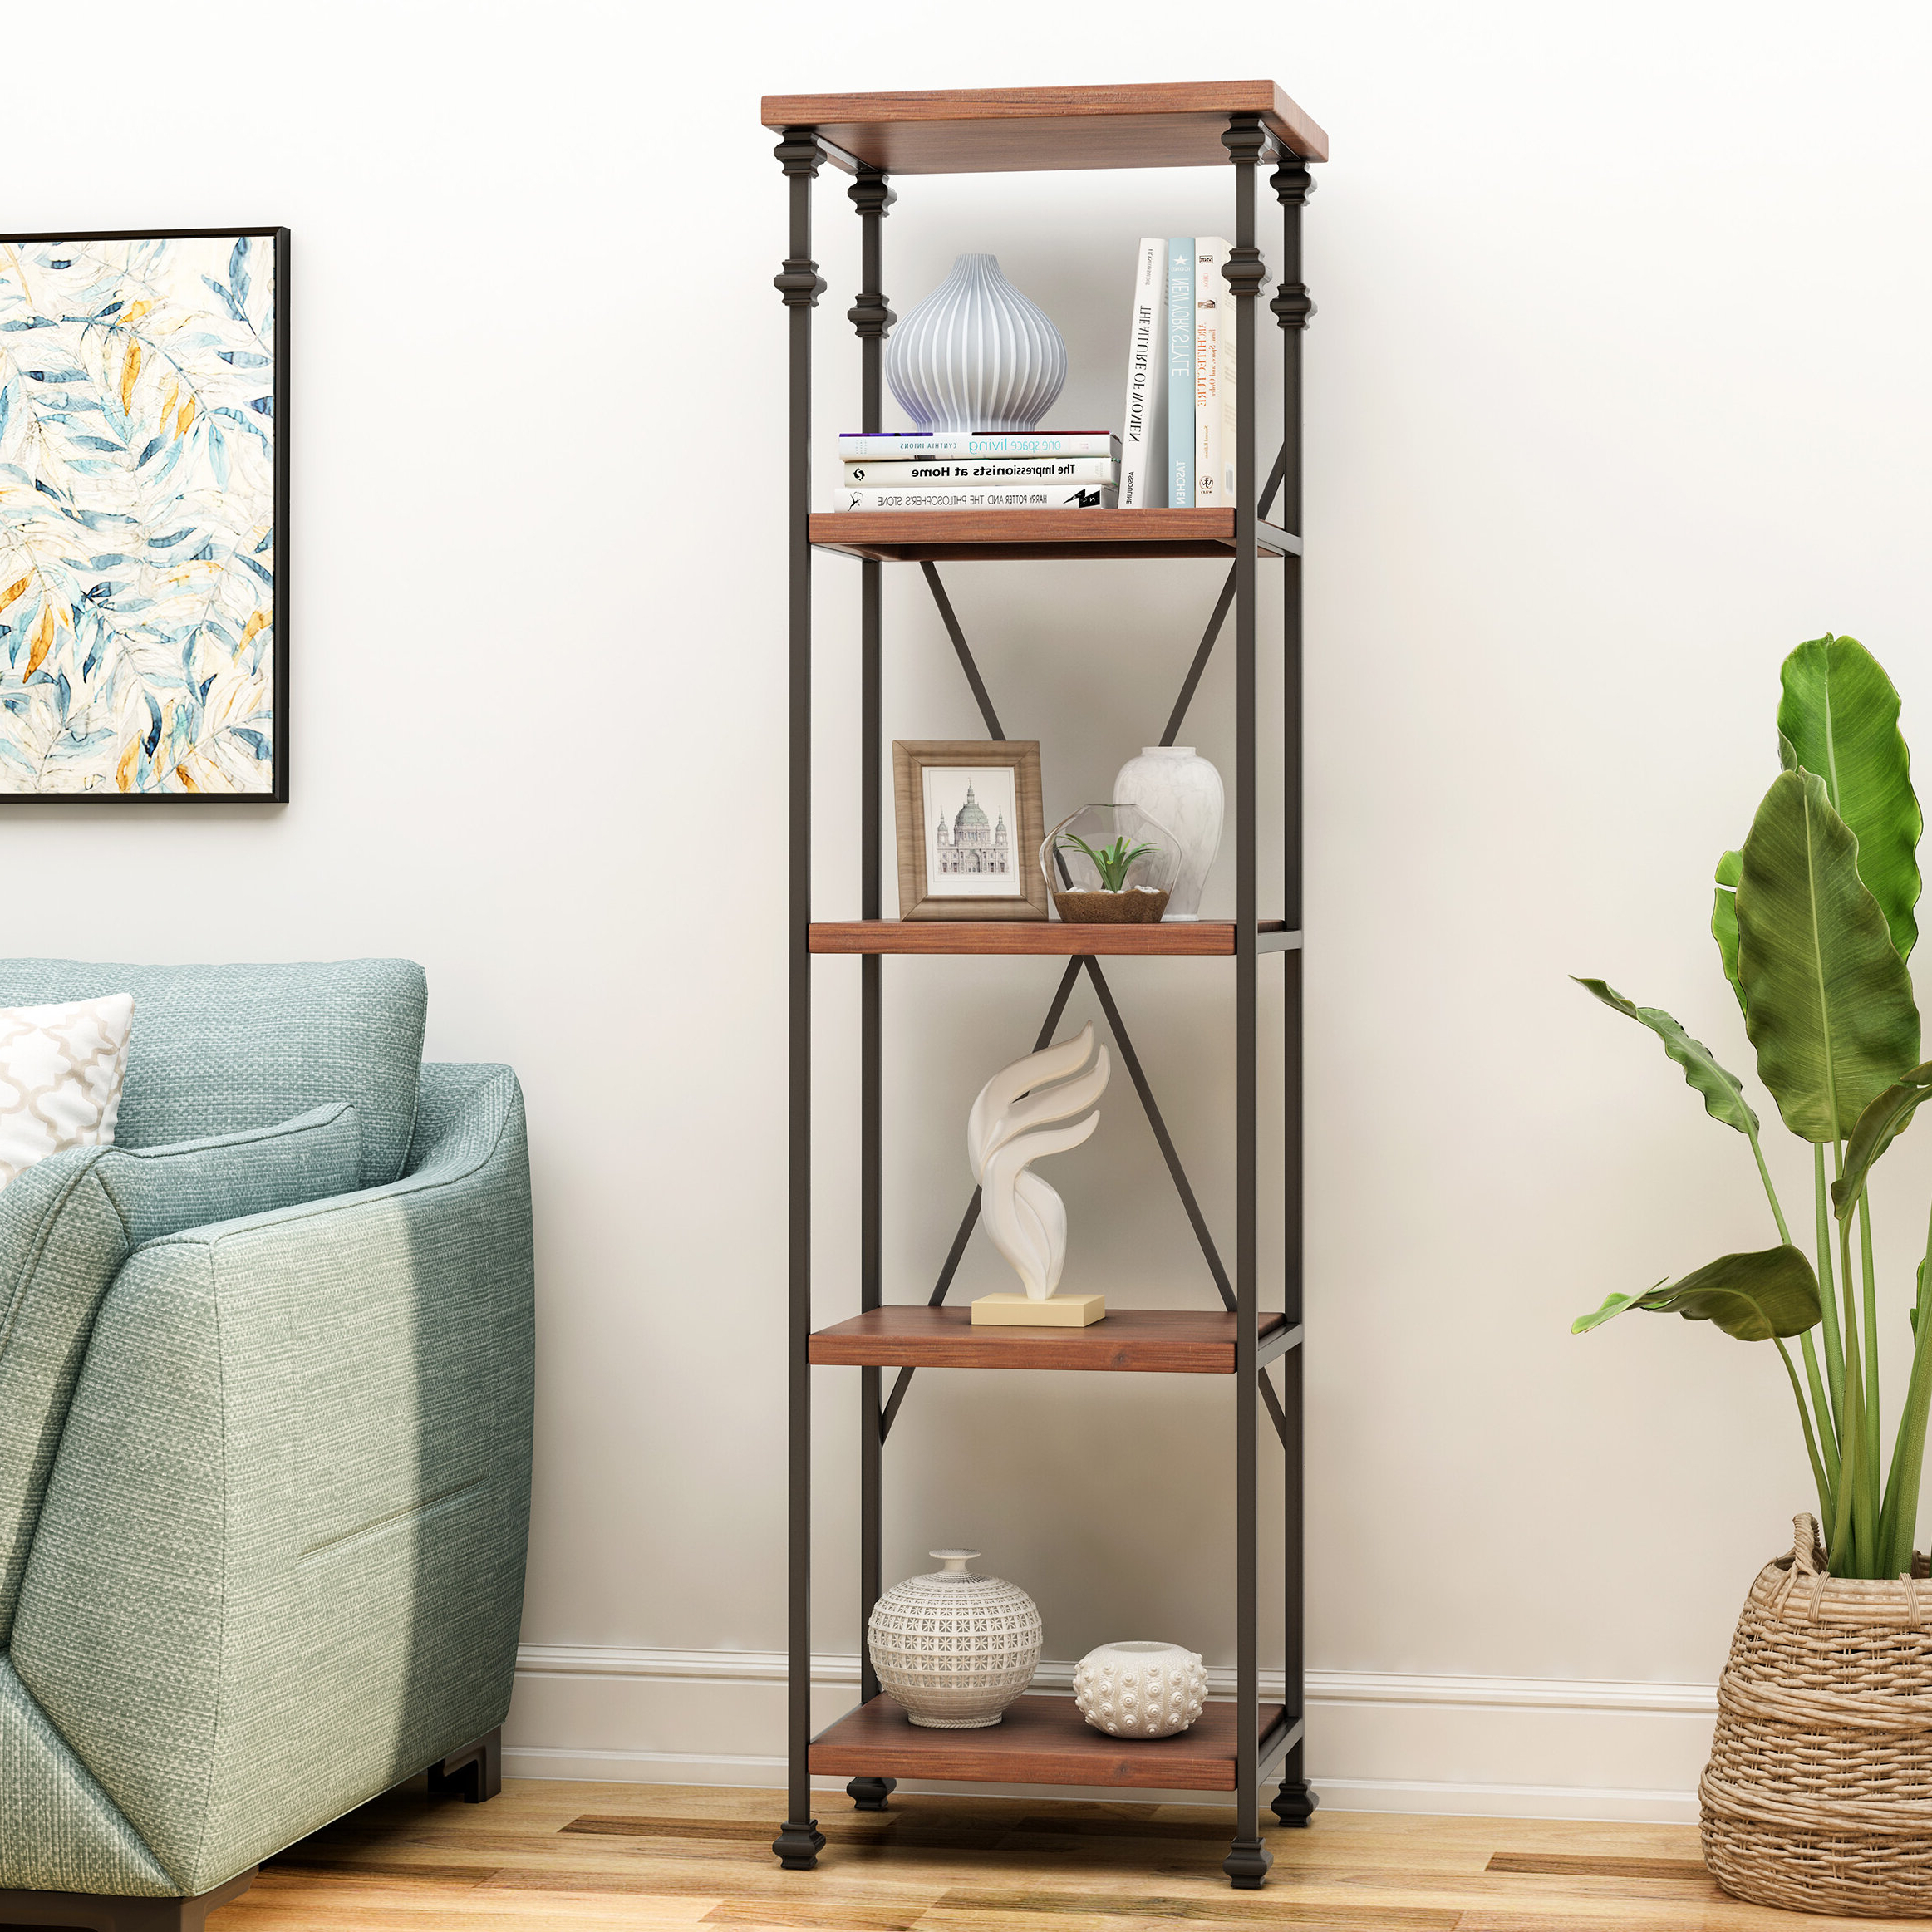 Sarina 4 Shelf Etagere Bookcase Pertaining To Most Up To Date Aptos Etagere Bookcases (View 11 of 20)